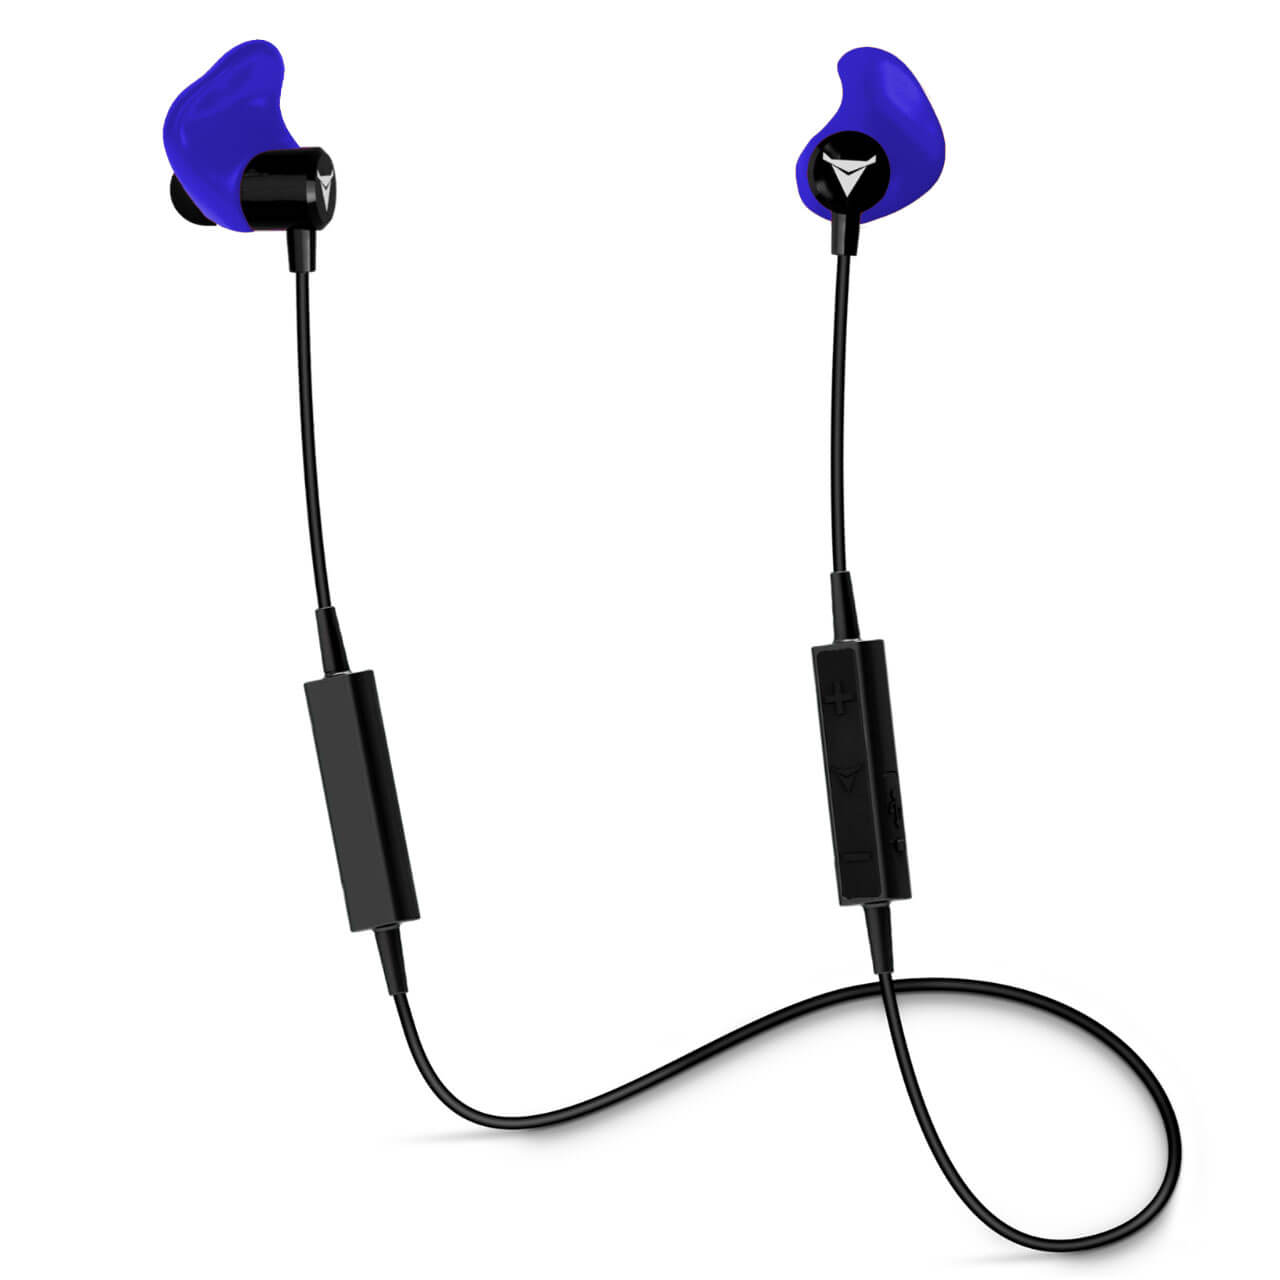 0baf5cd8be3 Custom Fit Earphones that Won't Fall Out and Stay Comfortable